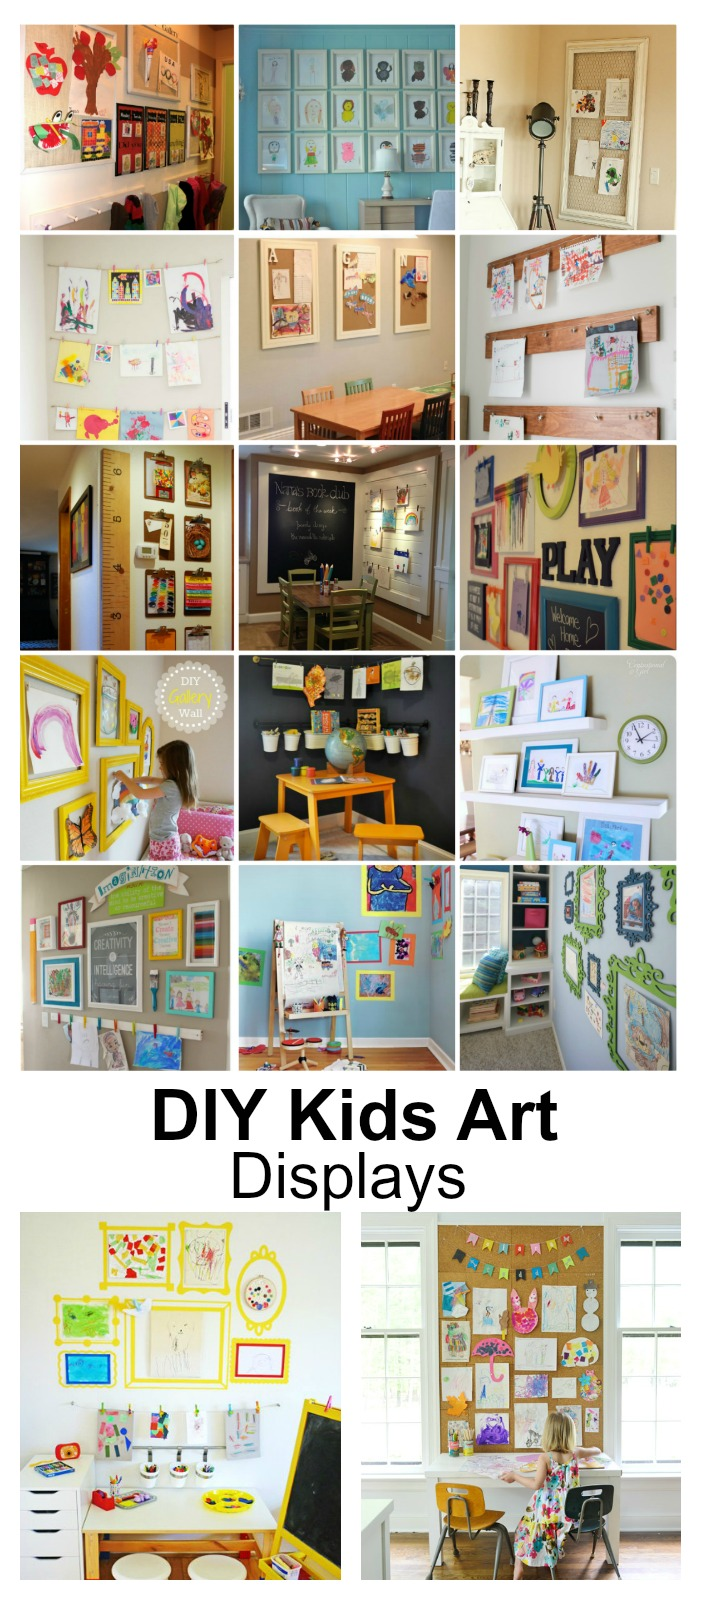 DIY-Kids-Art-Displays-Pin